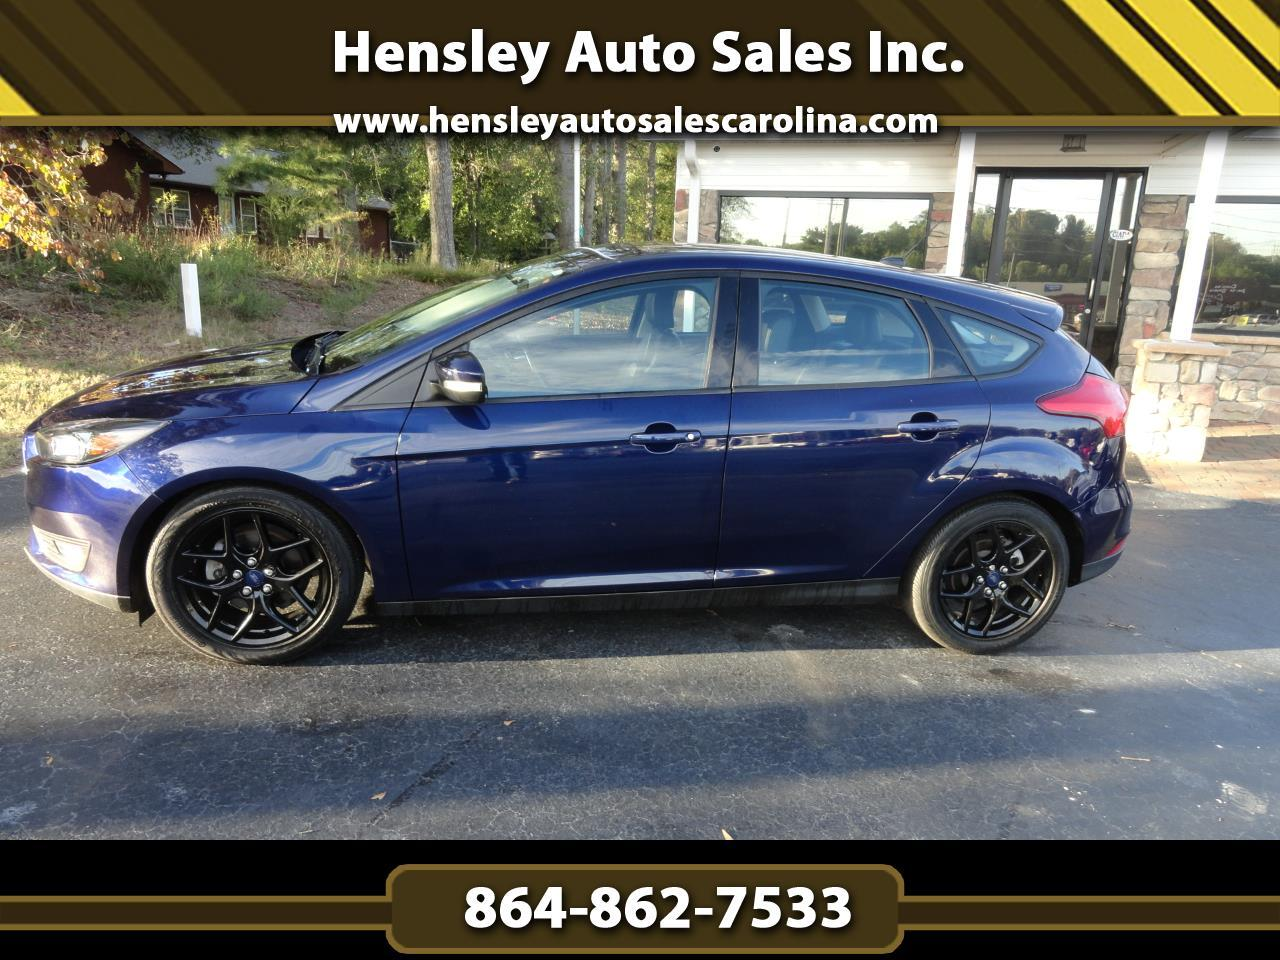 2016 Ford FOCUS SE 5 door hatchback